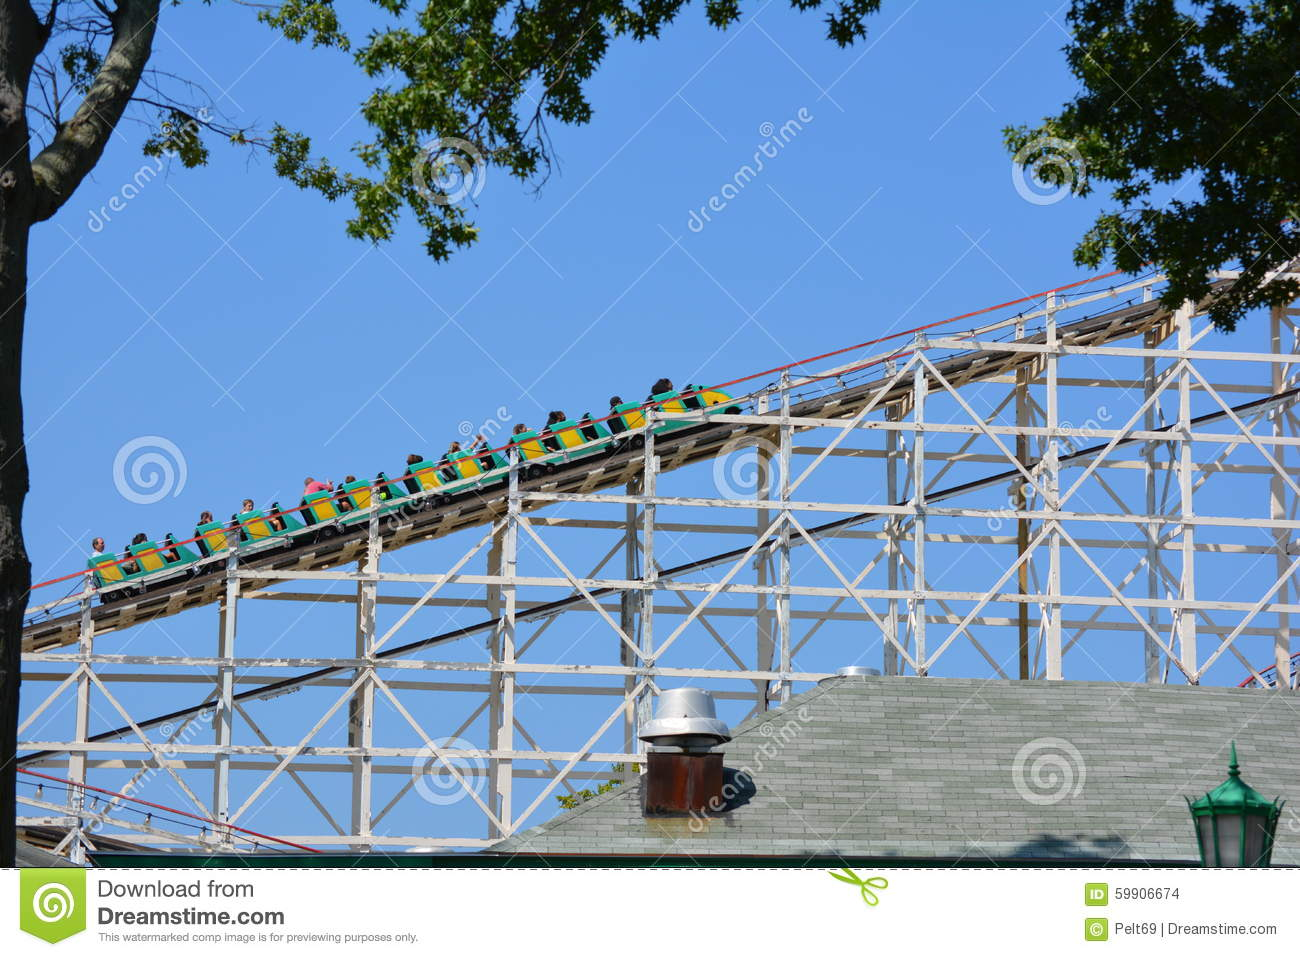 Vintage Backyard Roller Coaster :  on rails of old wooden roller coaster against blue skies on sunny day